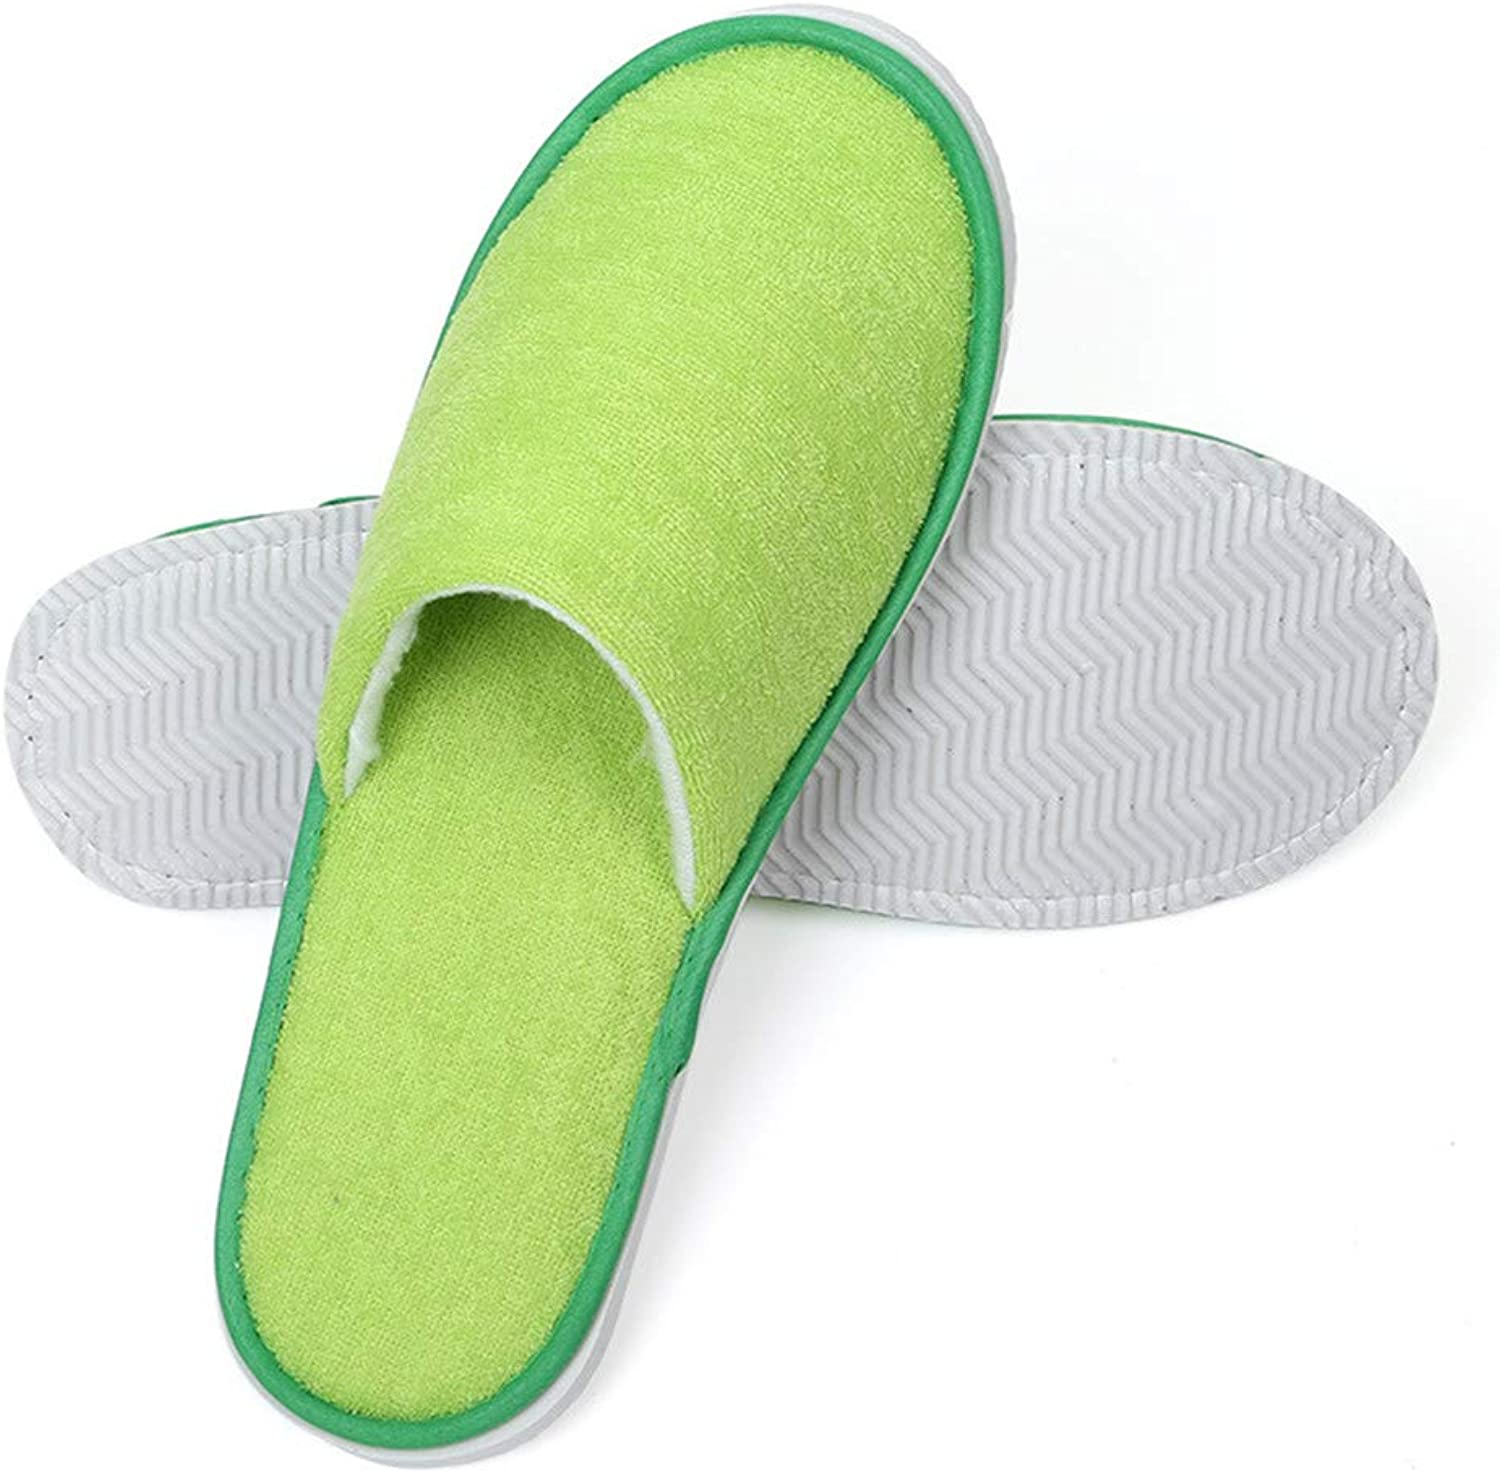 Slippers Disposable Closed Toe Slippers Adults' Terry Cloth Thick Non-Slip Hotel Slippers for Women and Men,Green,20pair